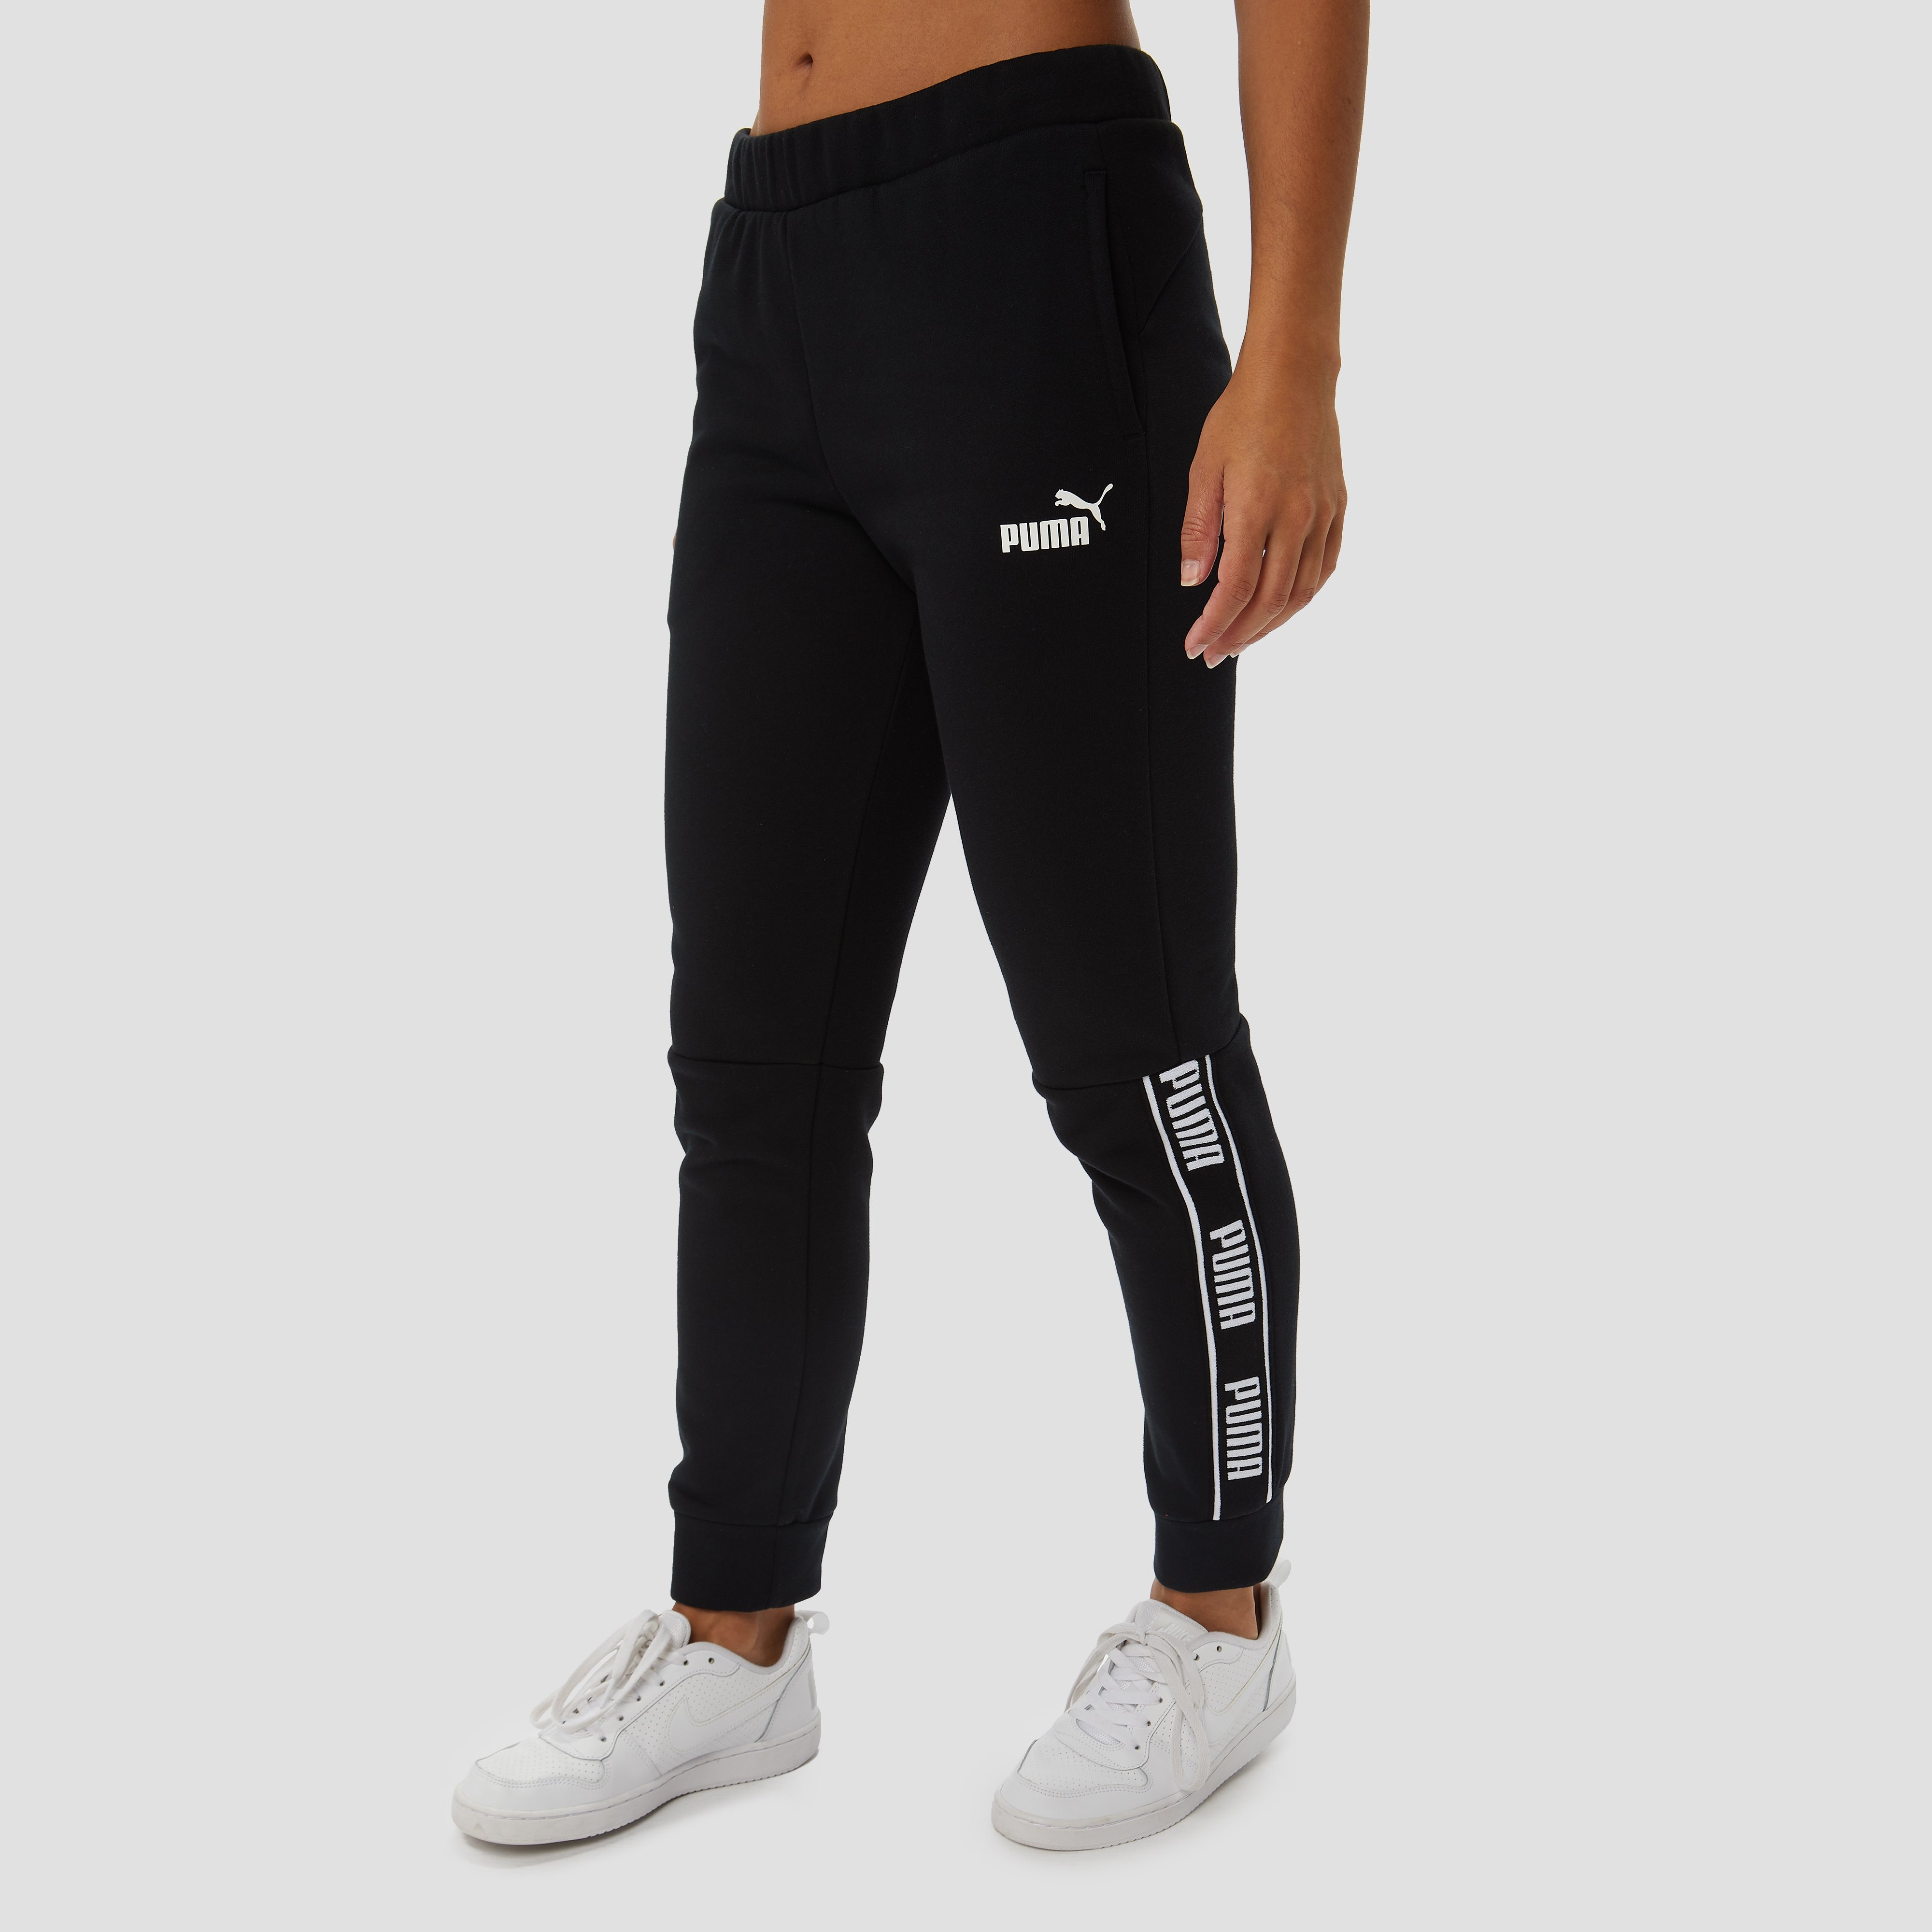 PUMA AMPLIFIED FLEECE JOGGINGBROEK ZWART DAMES | Perrysport